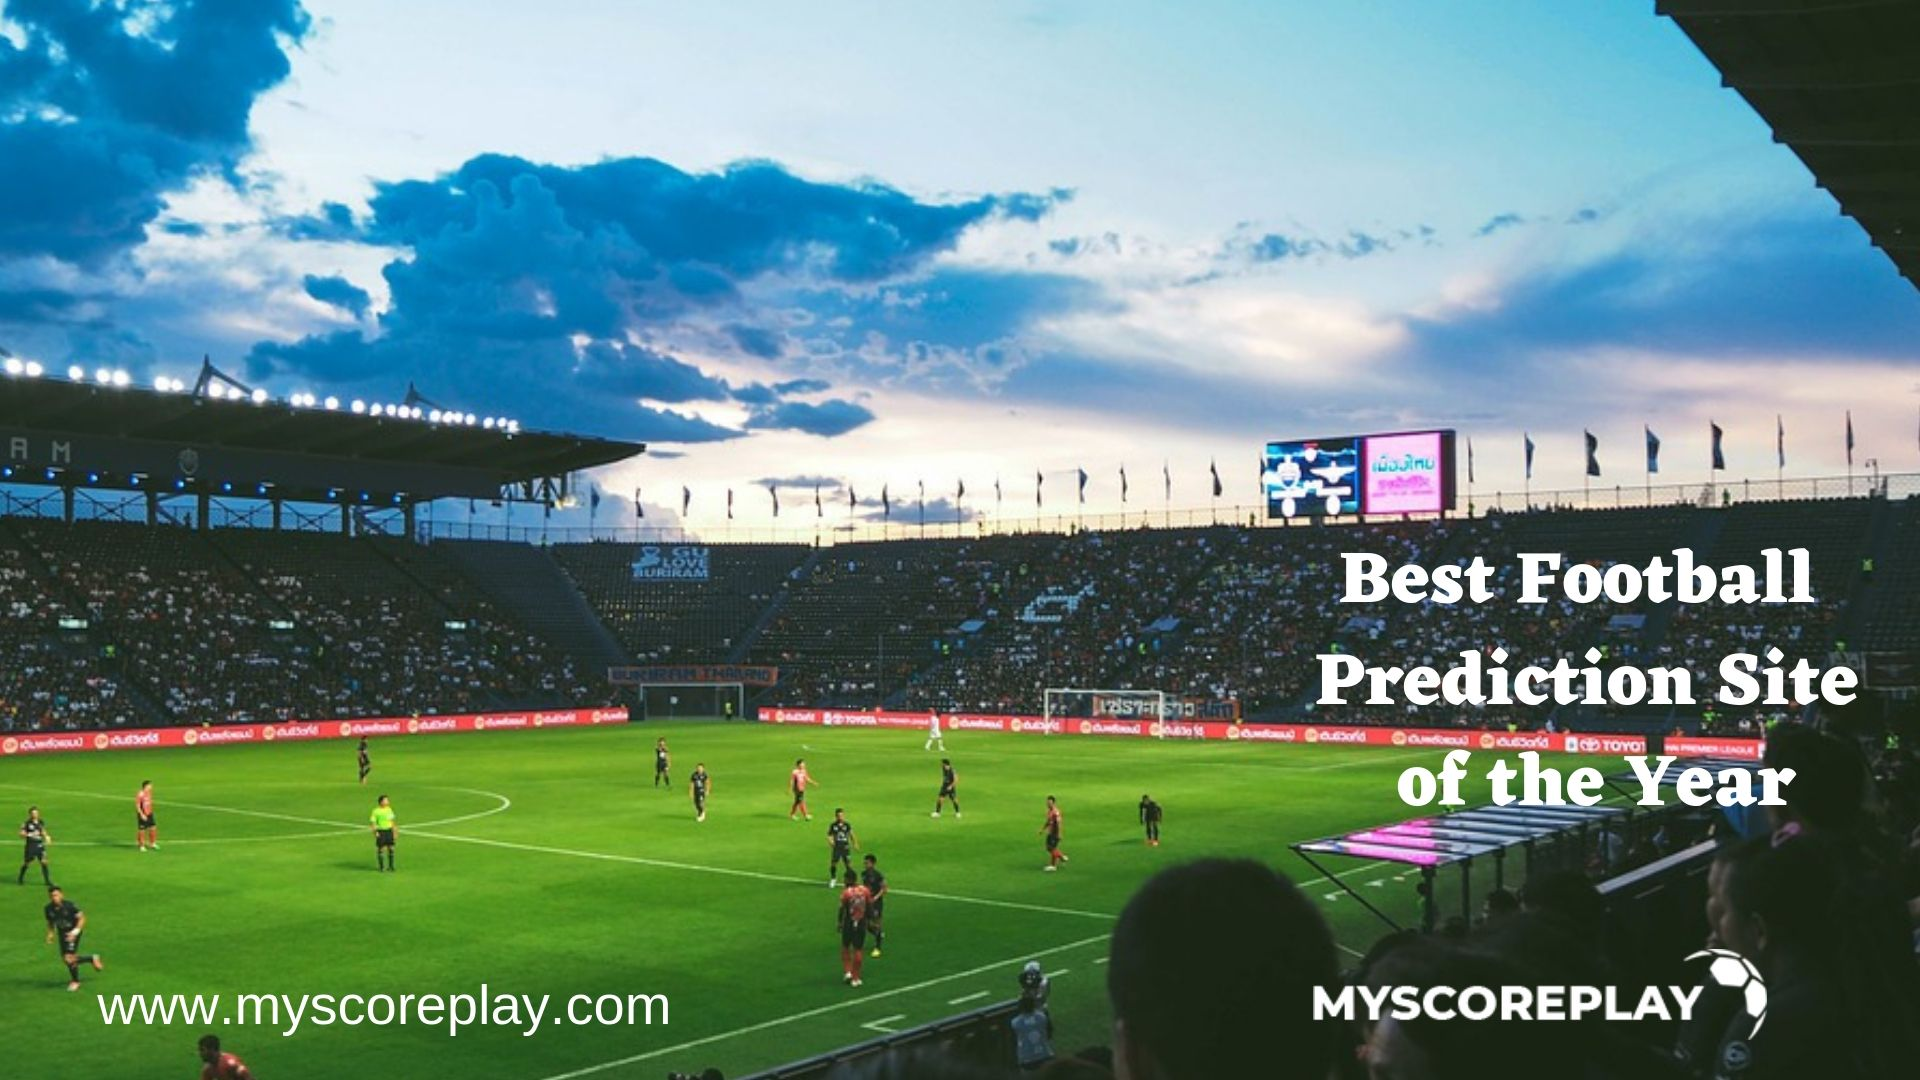 Myscoreplay is the best football Prediction Site of the Year in